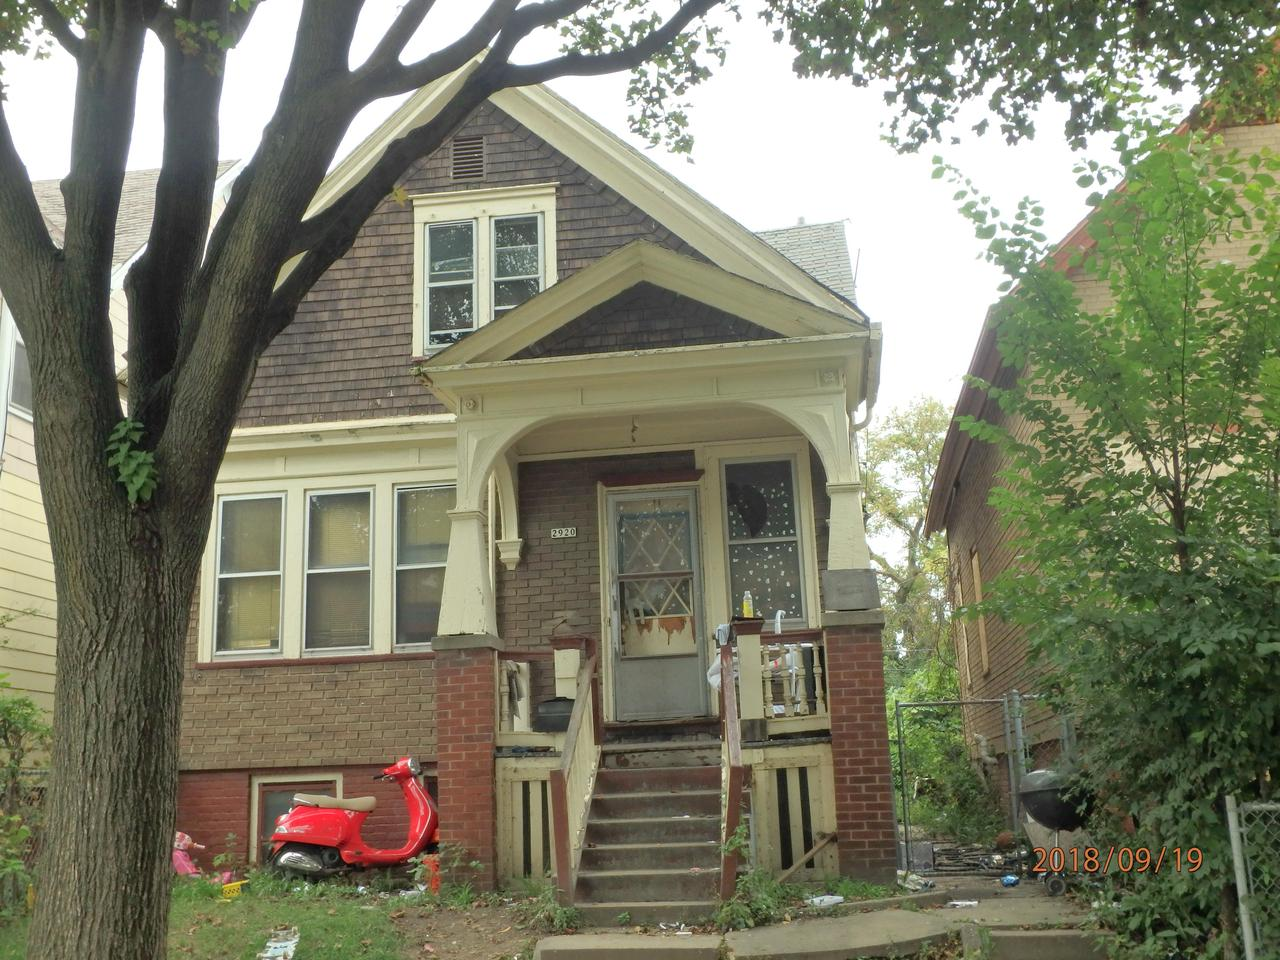 This is a tax foreclosed property.This property is open to investors as well as owner/occupants.Additional information can be found on the City of Milwaukee website.